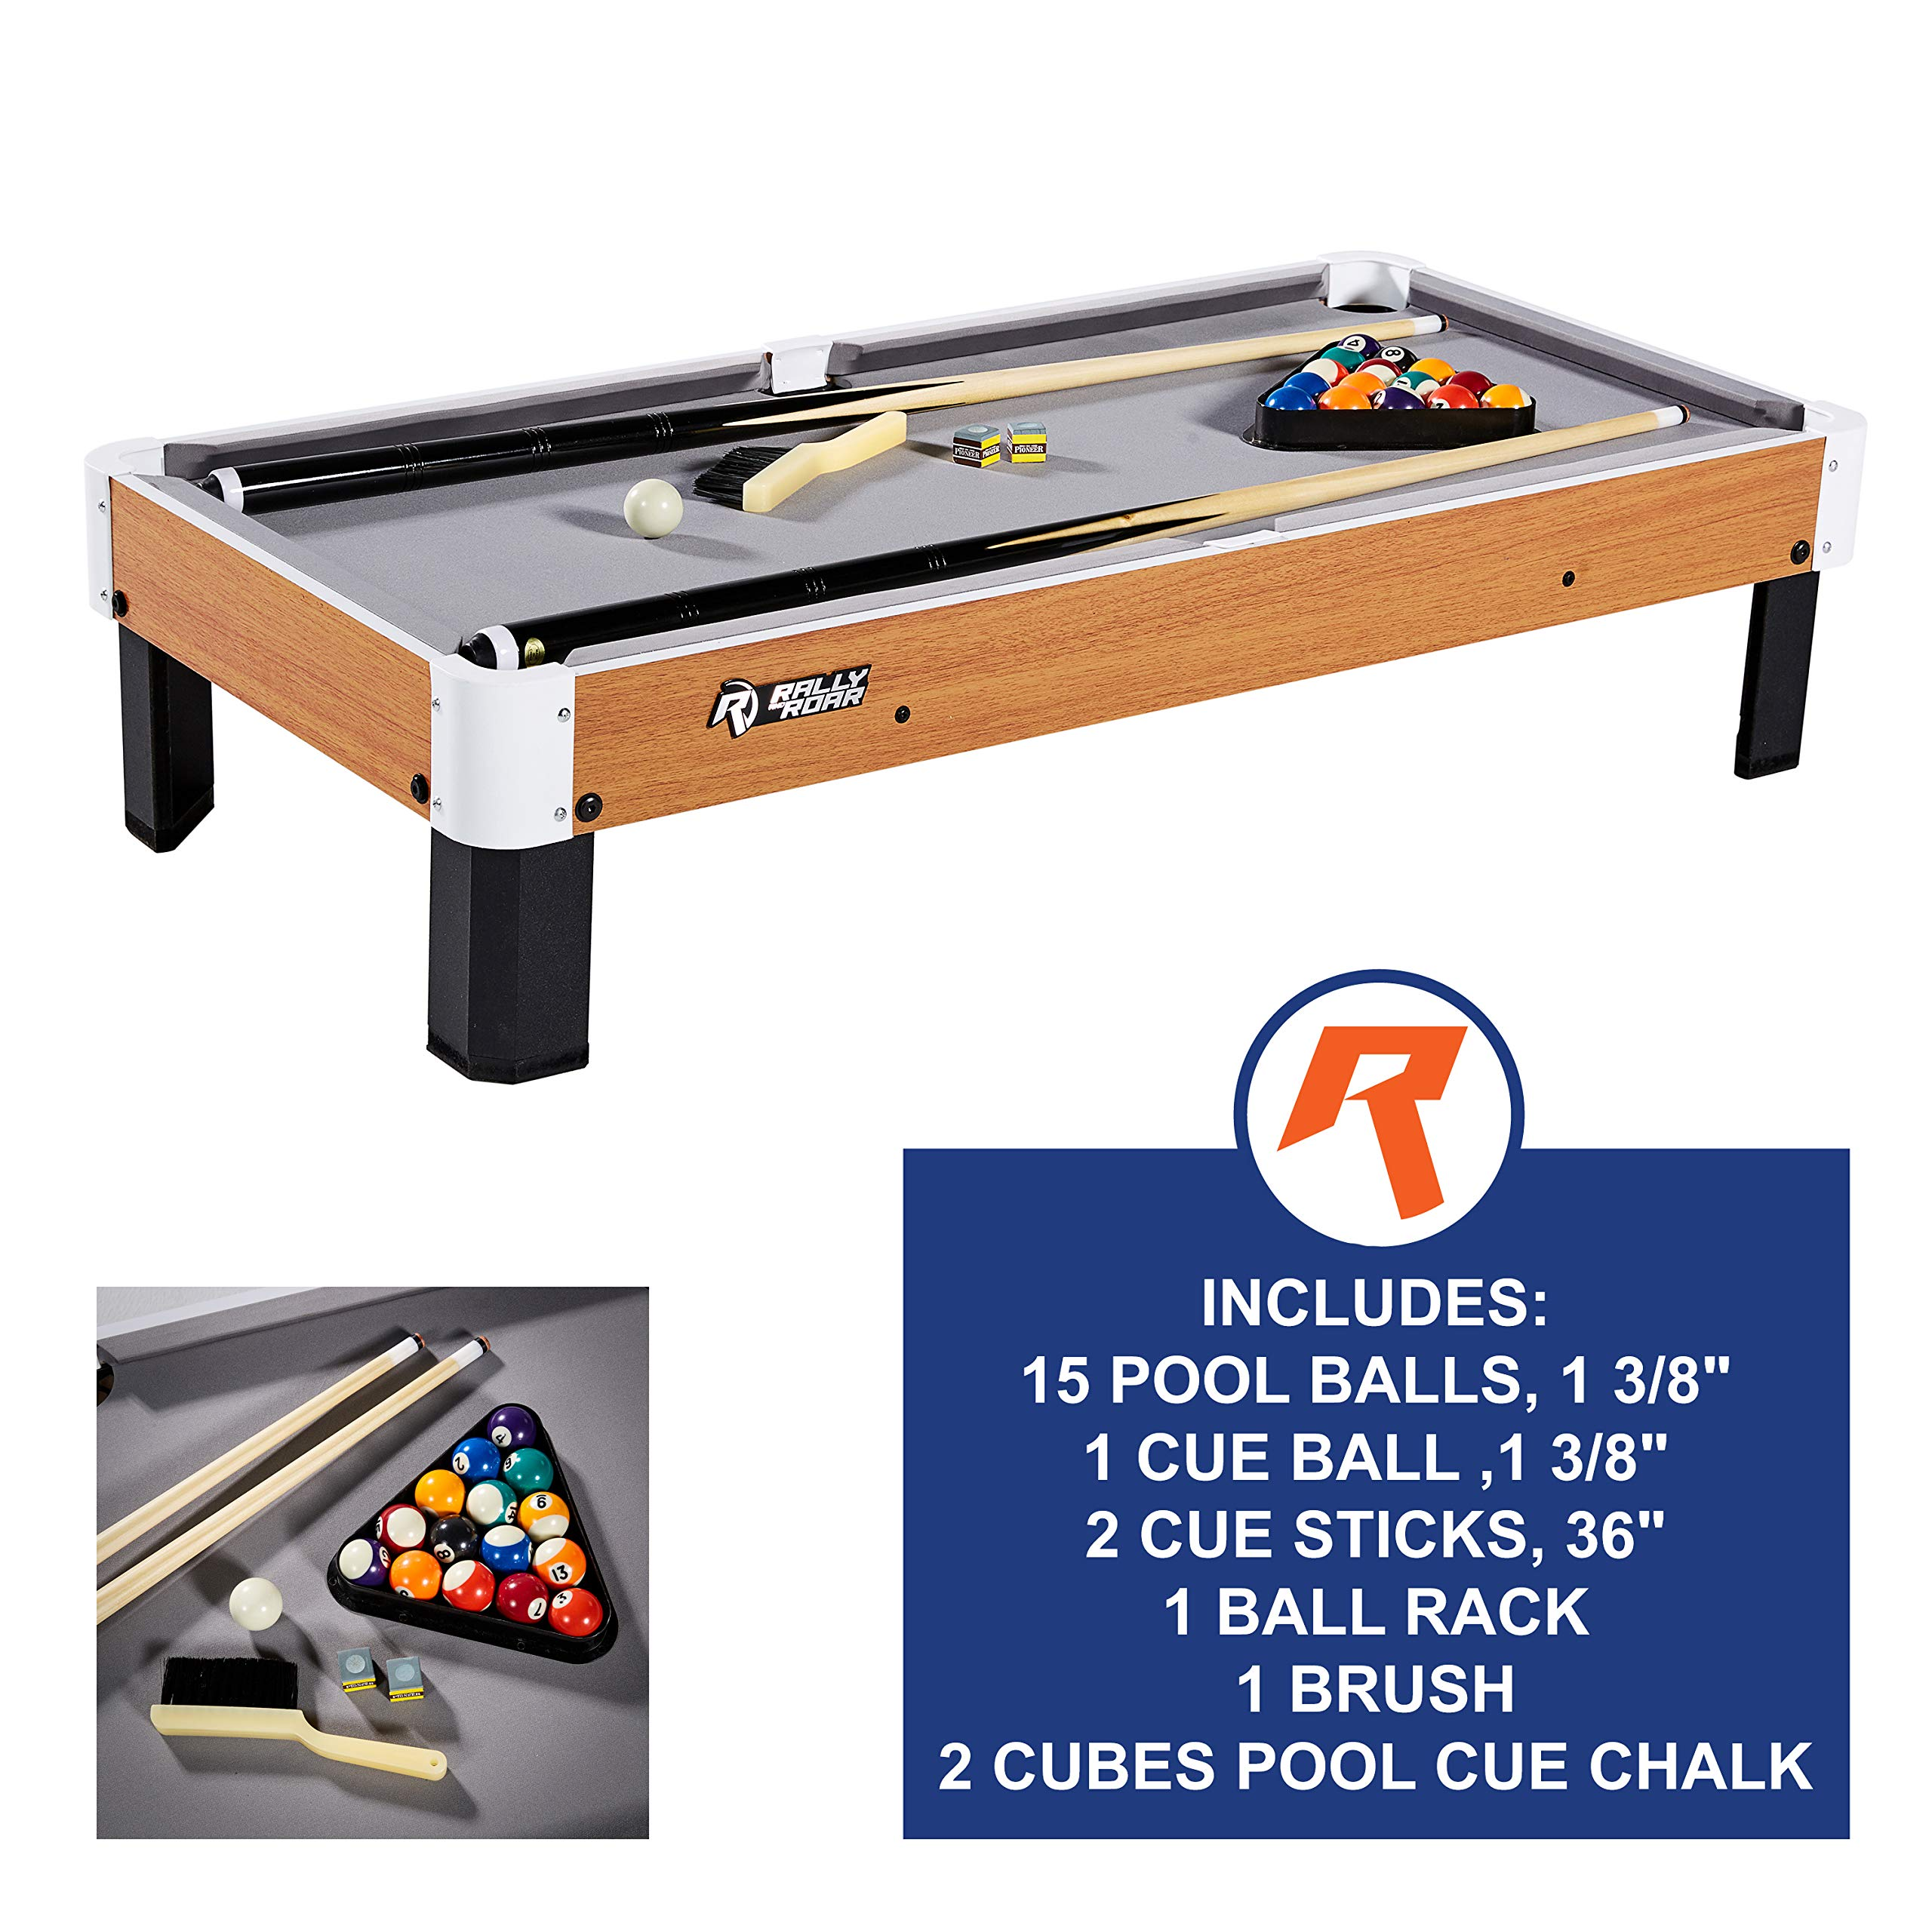 Rally and Roar Tabletop Pool Table Set and Accessories, 40'' x 20'' x 9'' - Mini, Travel-Size Billiard Tables, Balls, Cues, and Rack - Fun, Portable Family Games for Family, Parties, Camping, Road Trips by Rally and Roar